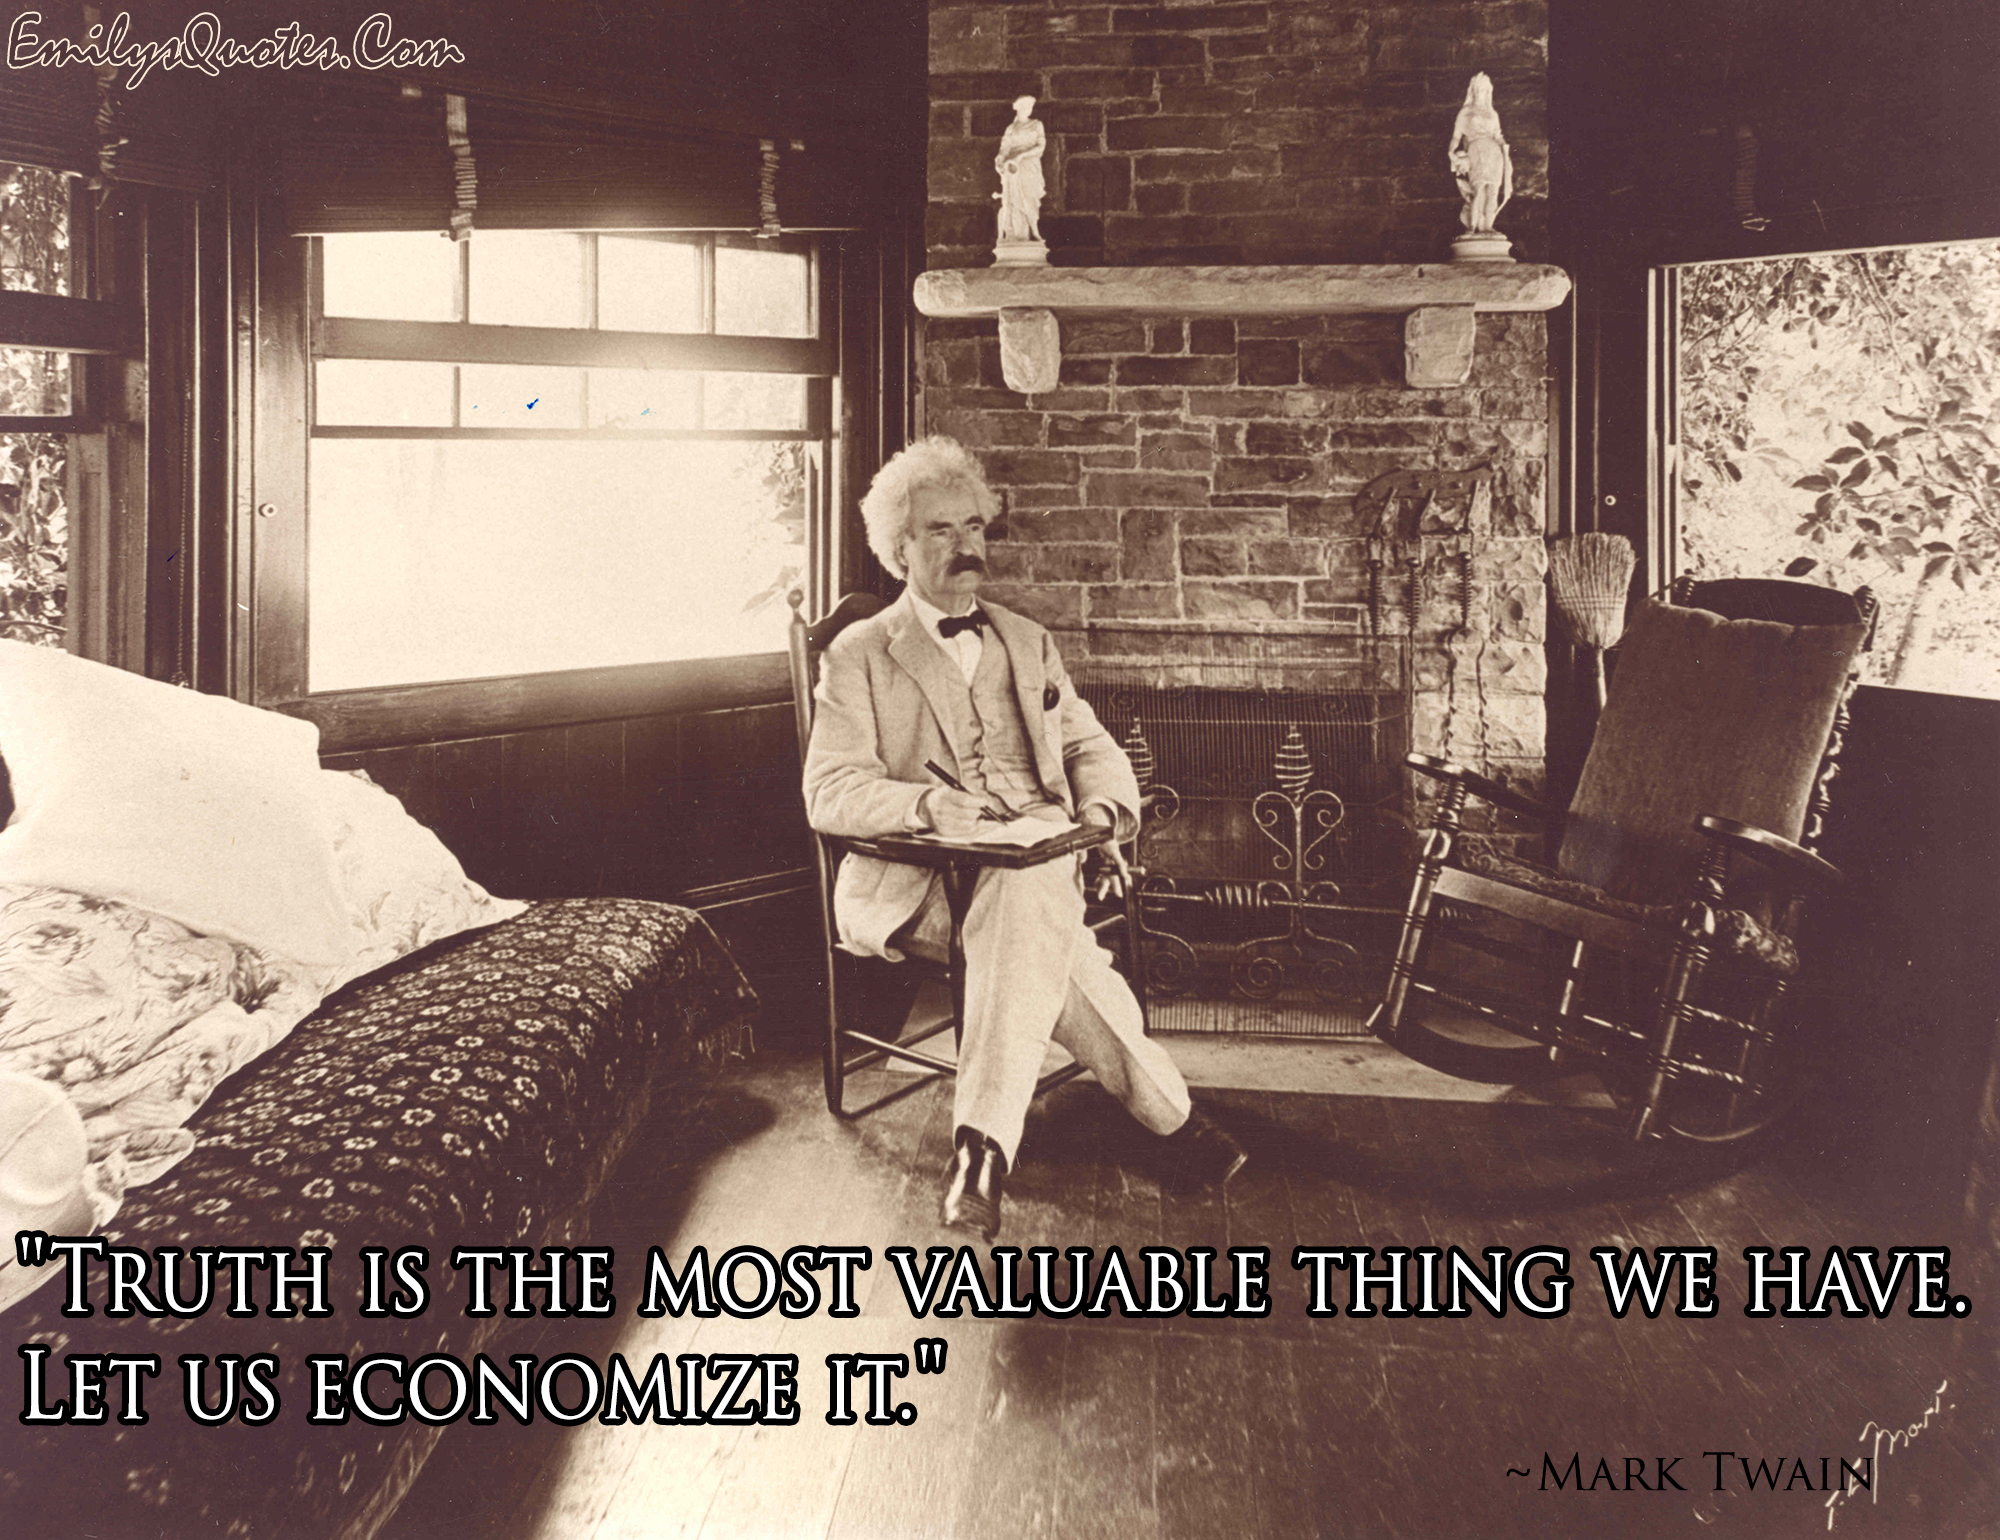 EmilysQuotes.Com - truth, intelligence, Mark Twain